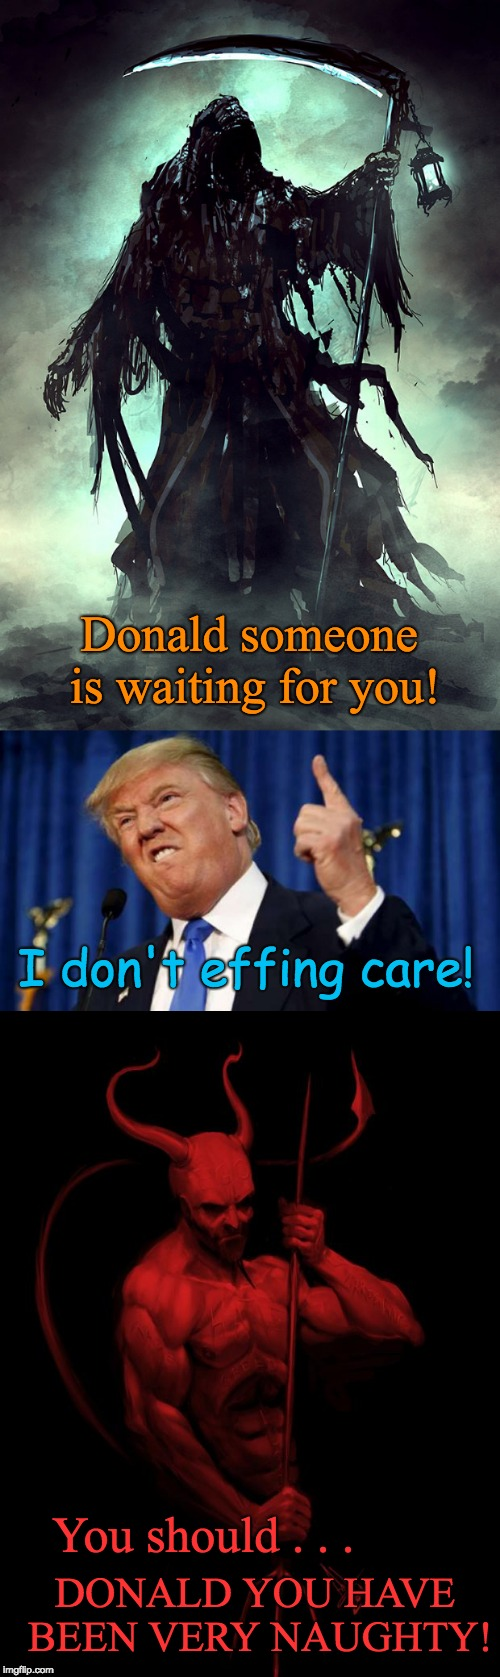 Death, the Donald, and the Devil | Donald someone is waiting for you! DONALD YOU HAVE BEEN VERY NAUGHTY! I don't effing care! You should . . . | image tagged in trump meets death,trump meets the devil,trump,devil,death | made w/ Imgflip meme maker